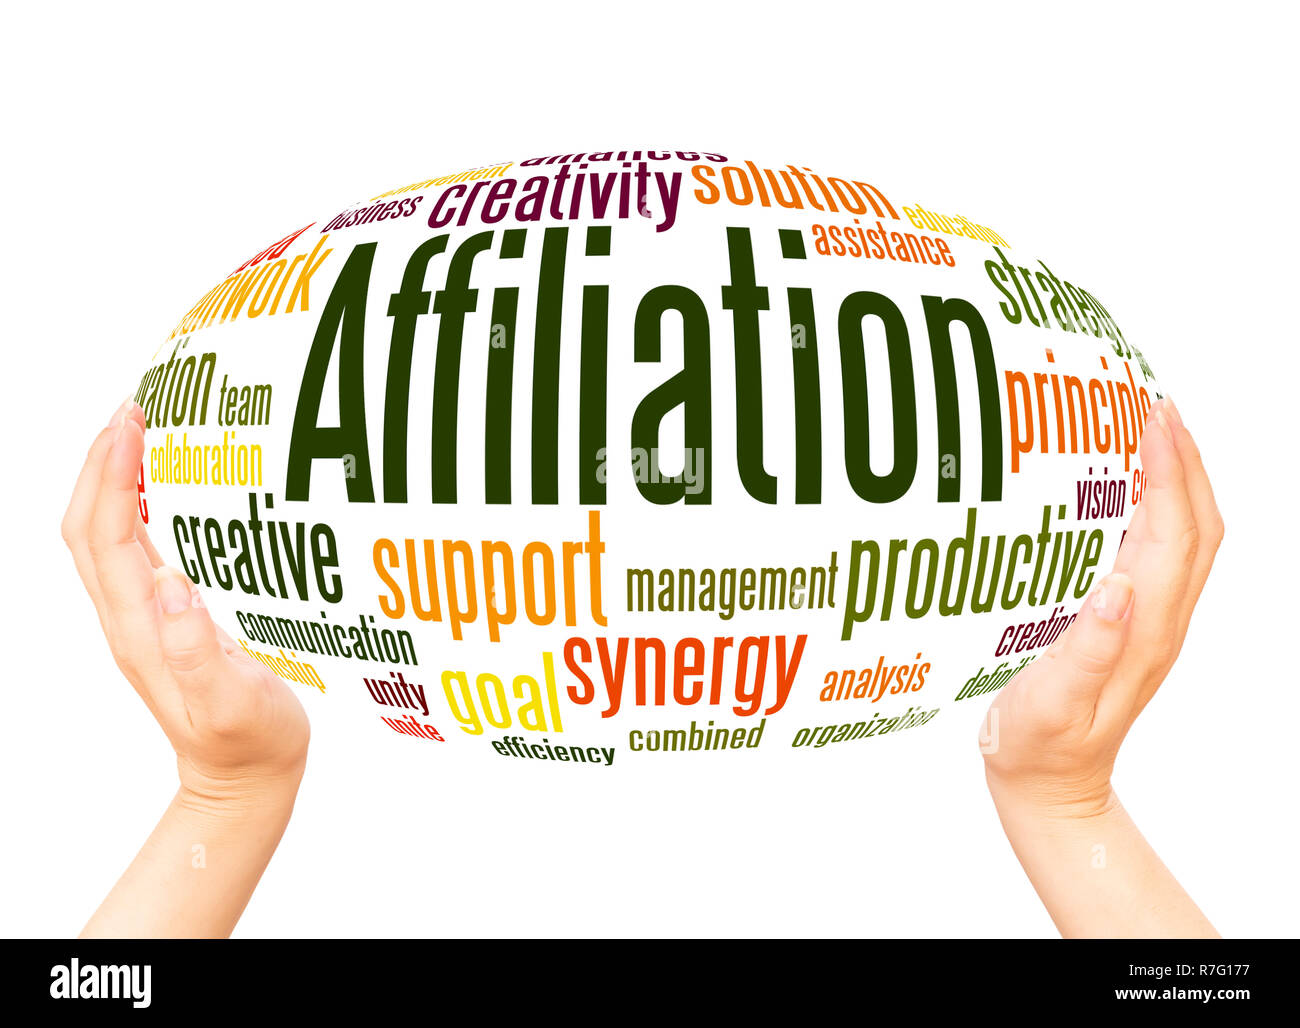 Affiliation word cloud hand sphere concept on white background. - Stock Image